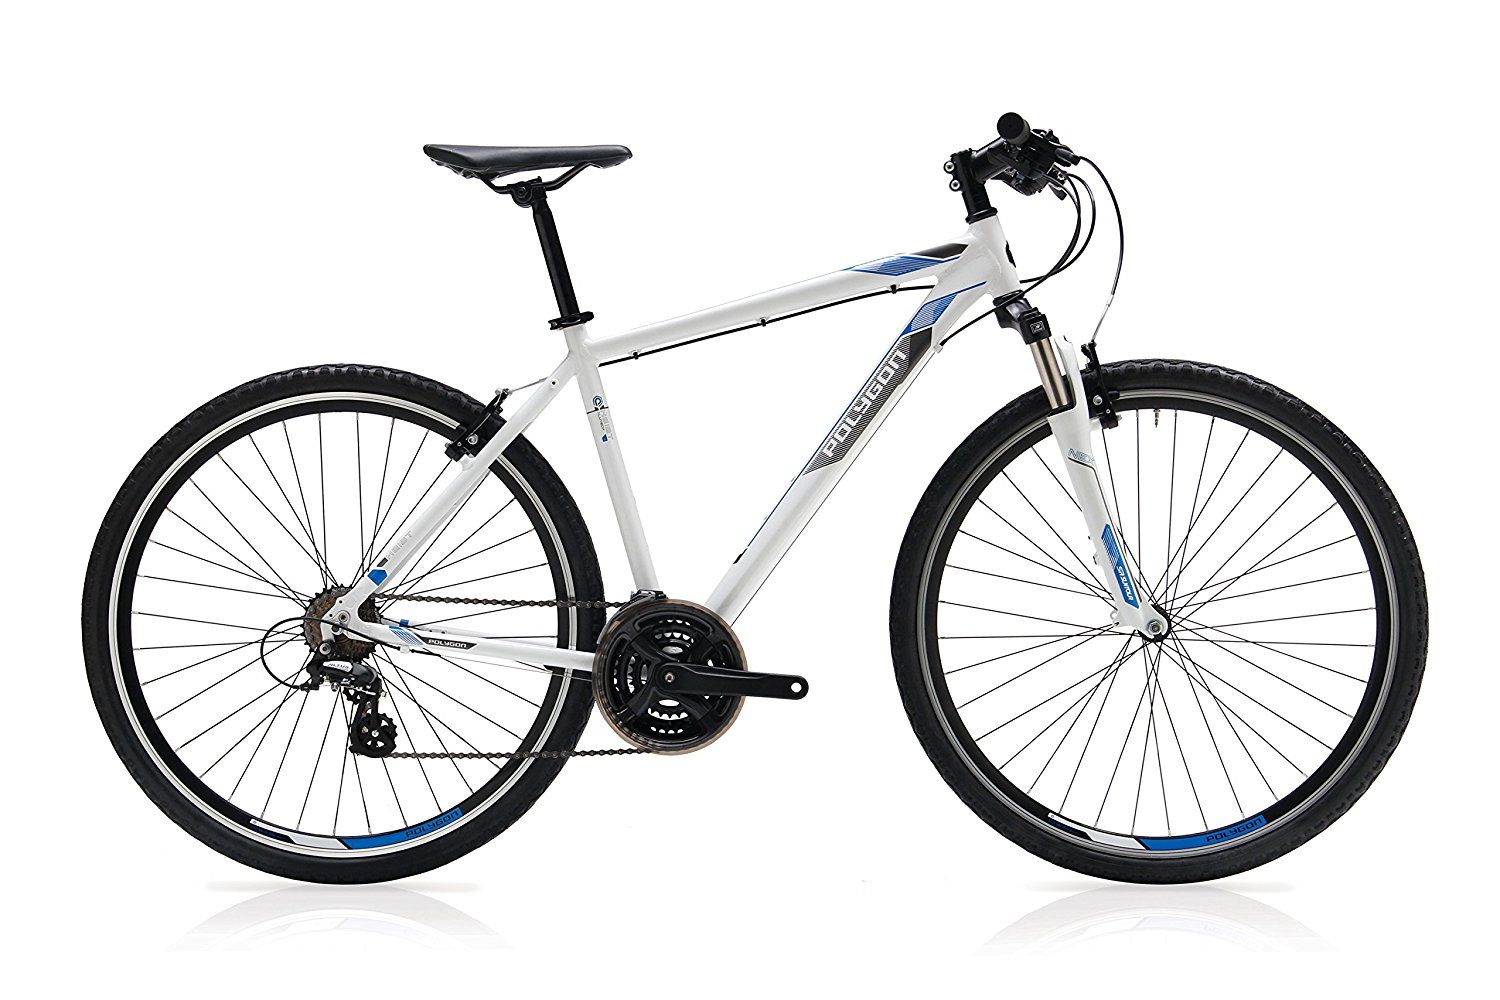 Hybrid Bicycles Top 5 Hybrid Bikes Under 400 What Is A Hybrid Bike Hybrid Bikes